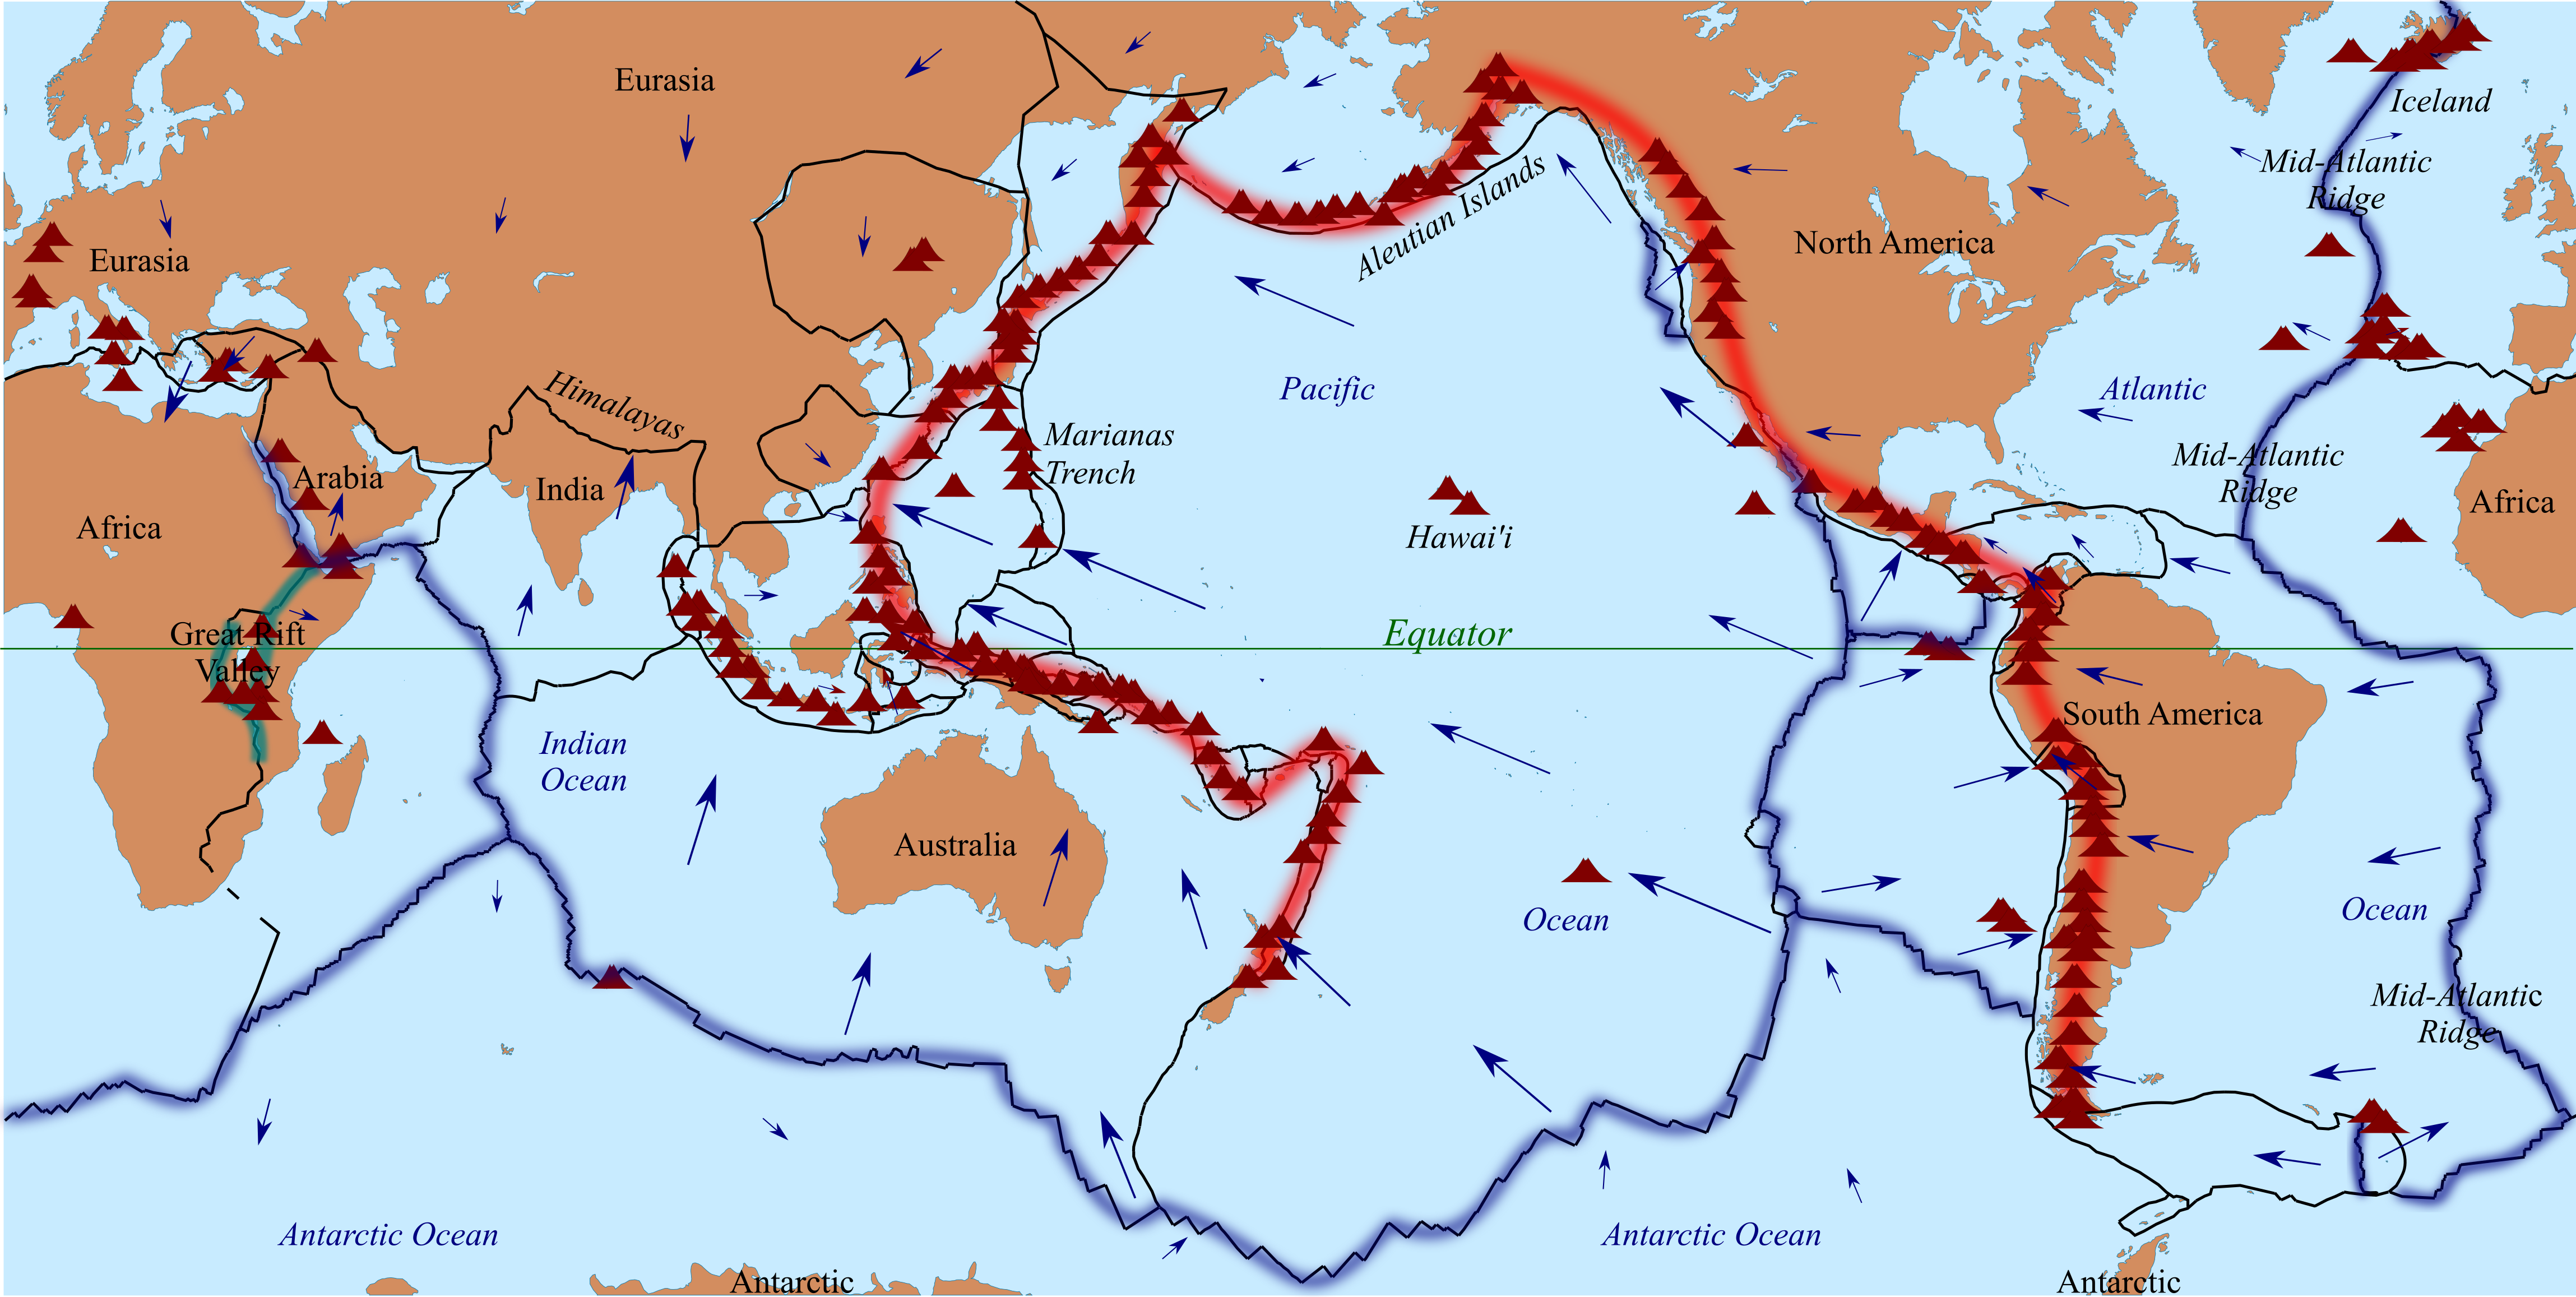 File Tectonic plates and ring of fire Wikimedia mons